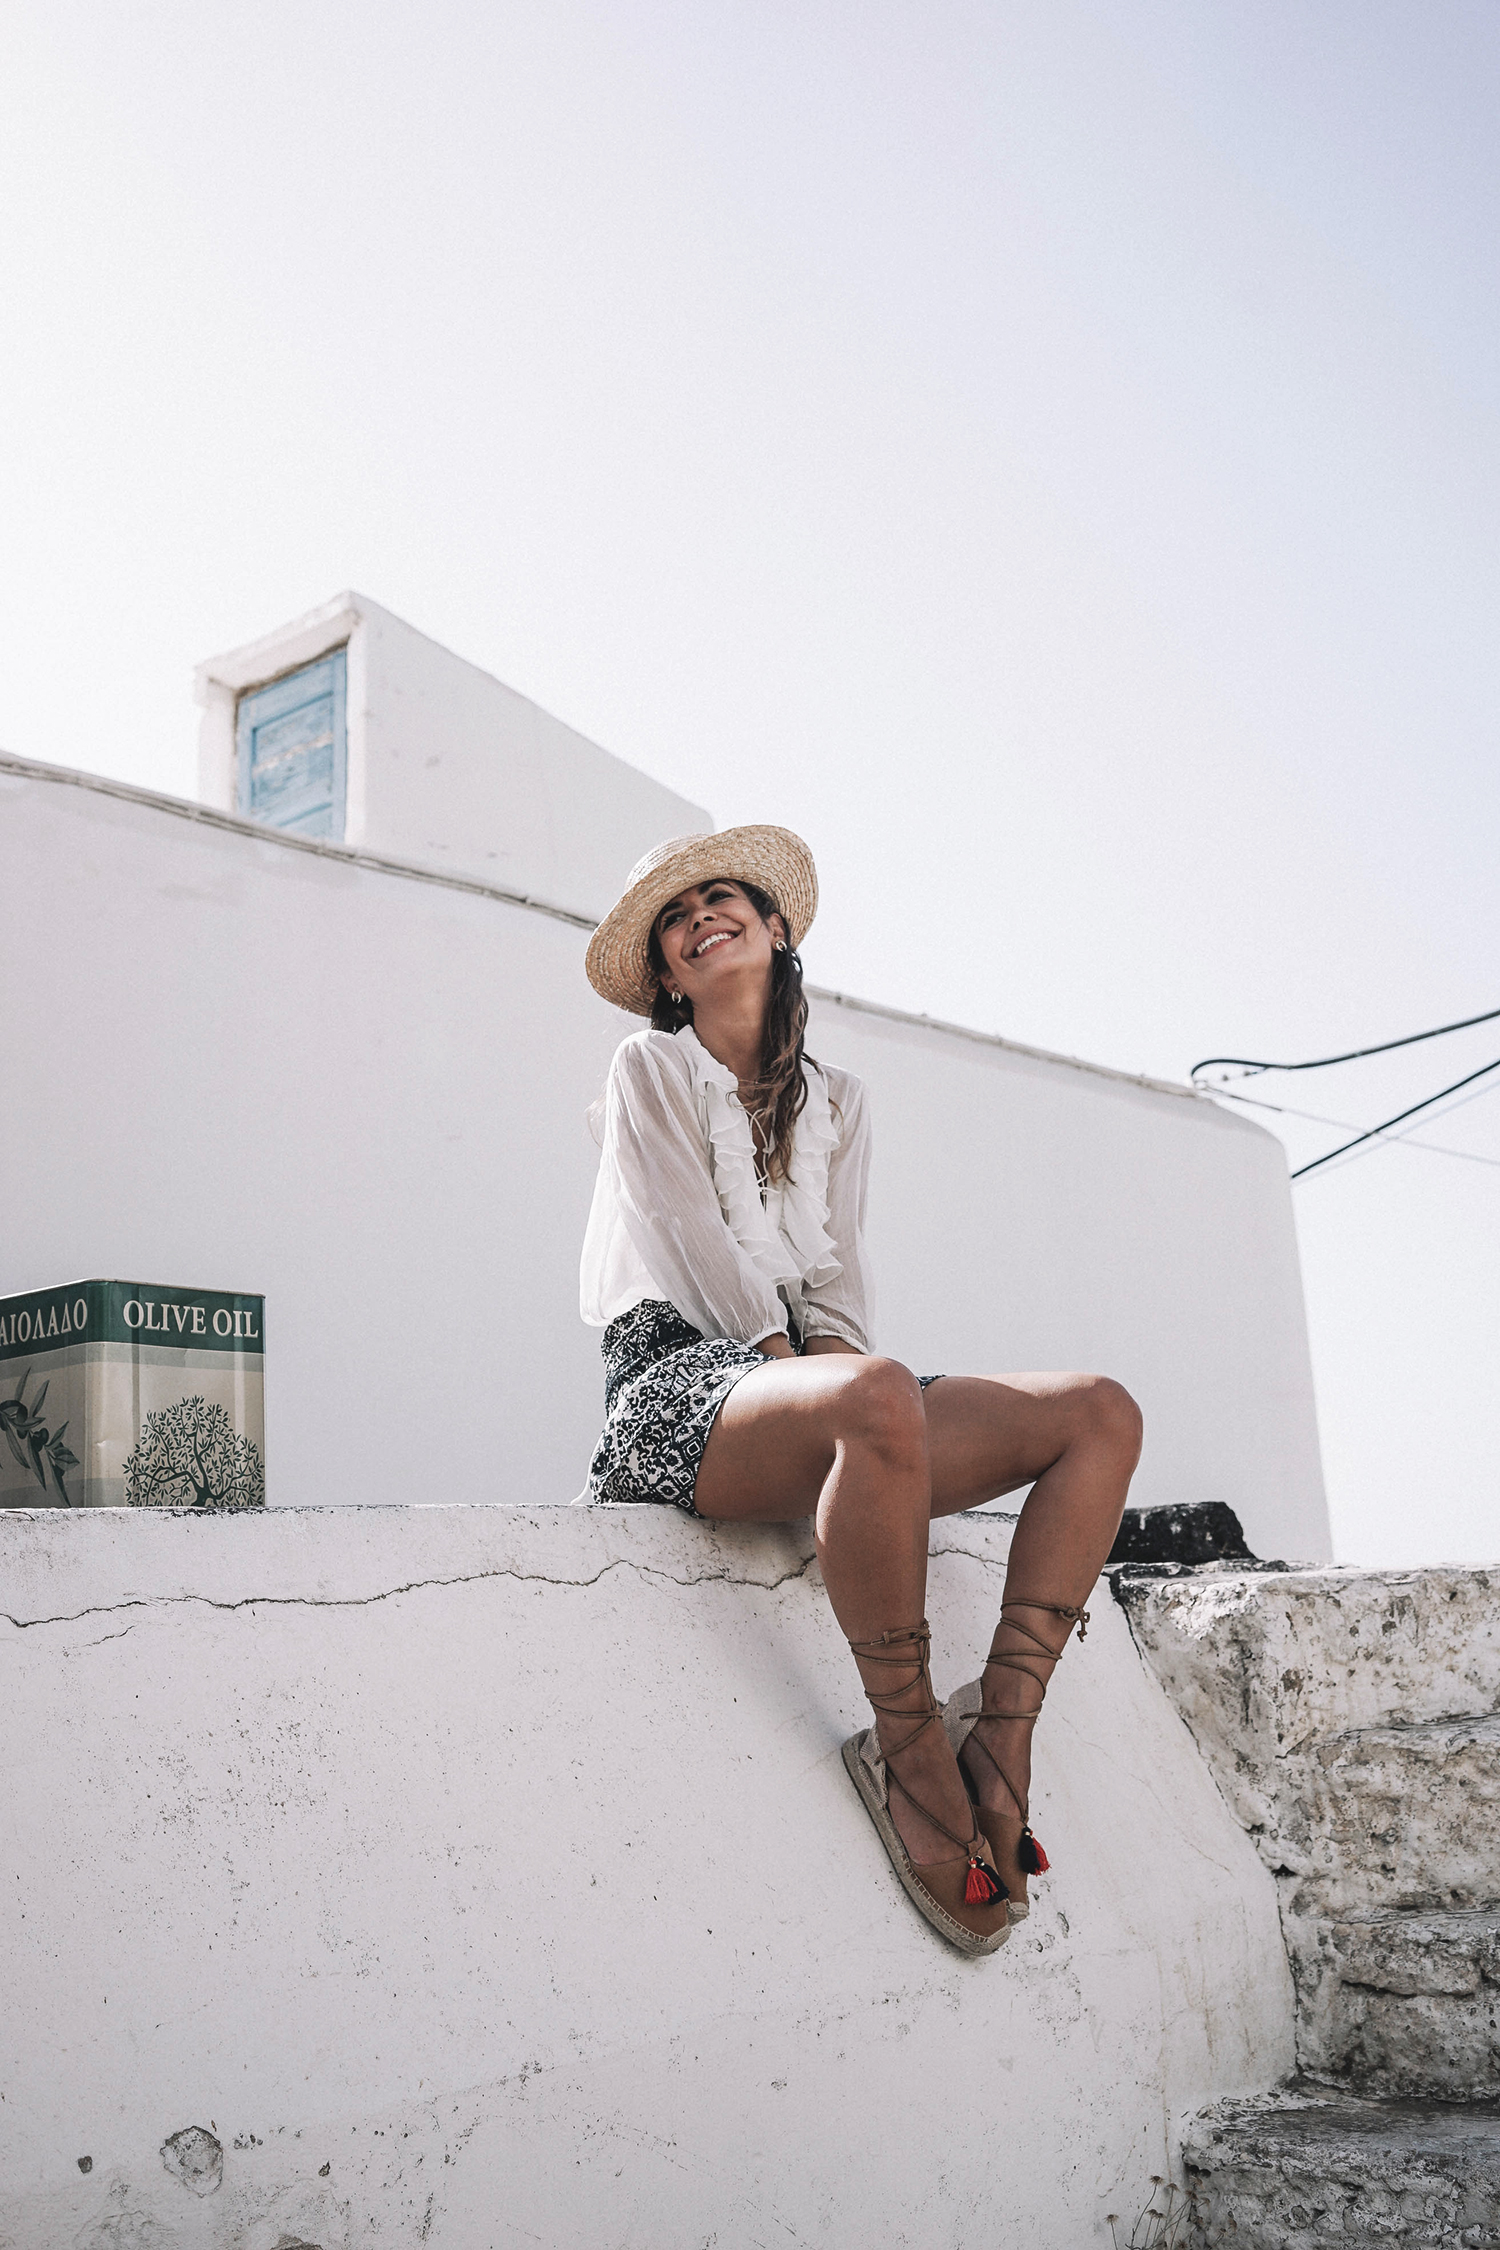 Lace_up_Blouse-Ralph_Lauren-Soludos_Espadrilles-Soludos_Escapes-Skirt-Straw_Hat-Canotier-Lack_Of_Color-Street_Style-Mykonos-Greece-Collage_Vintage-133